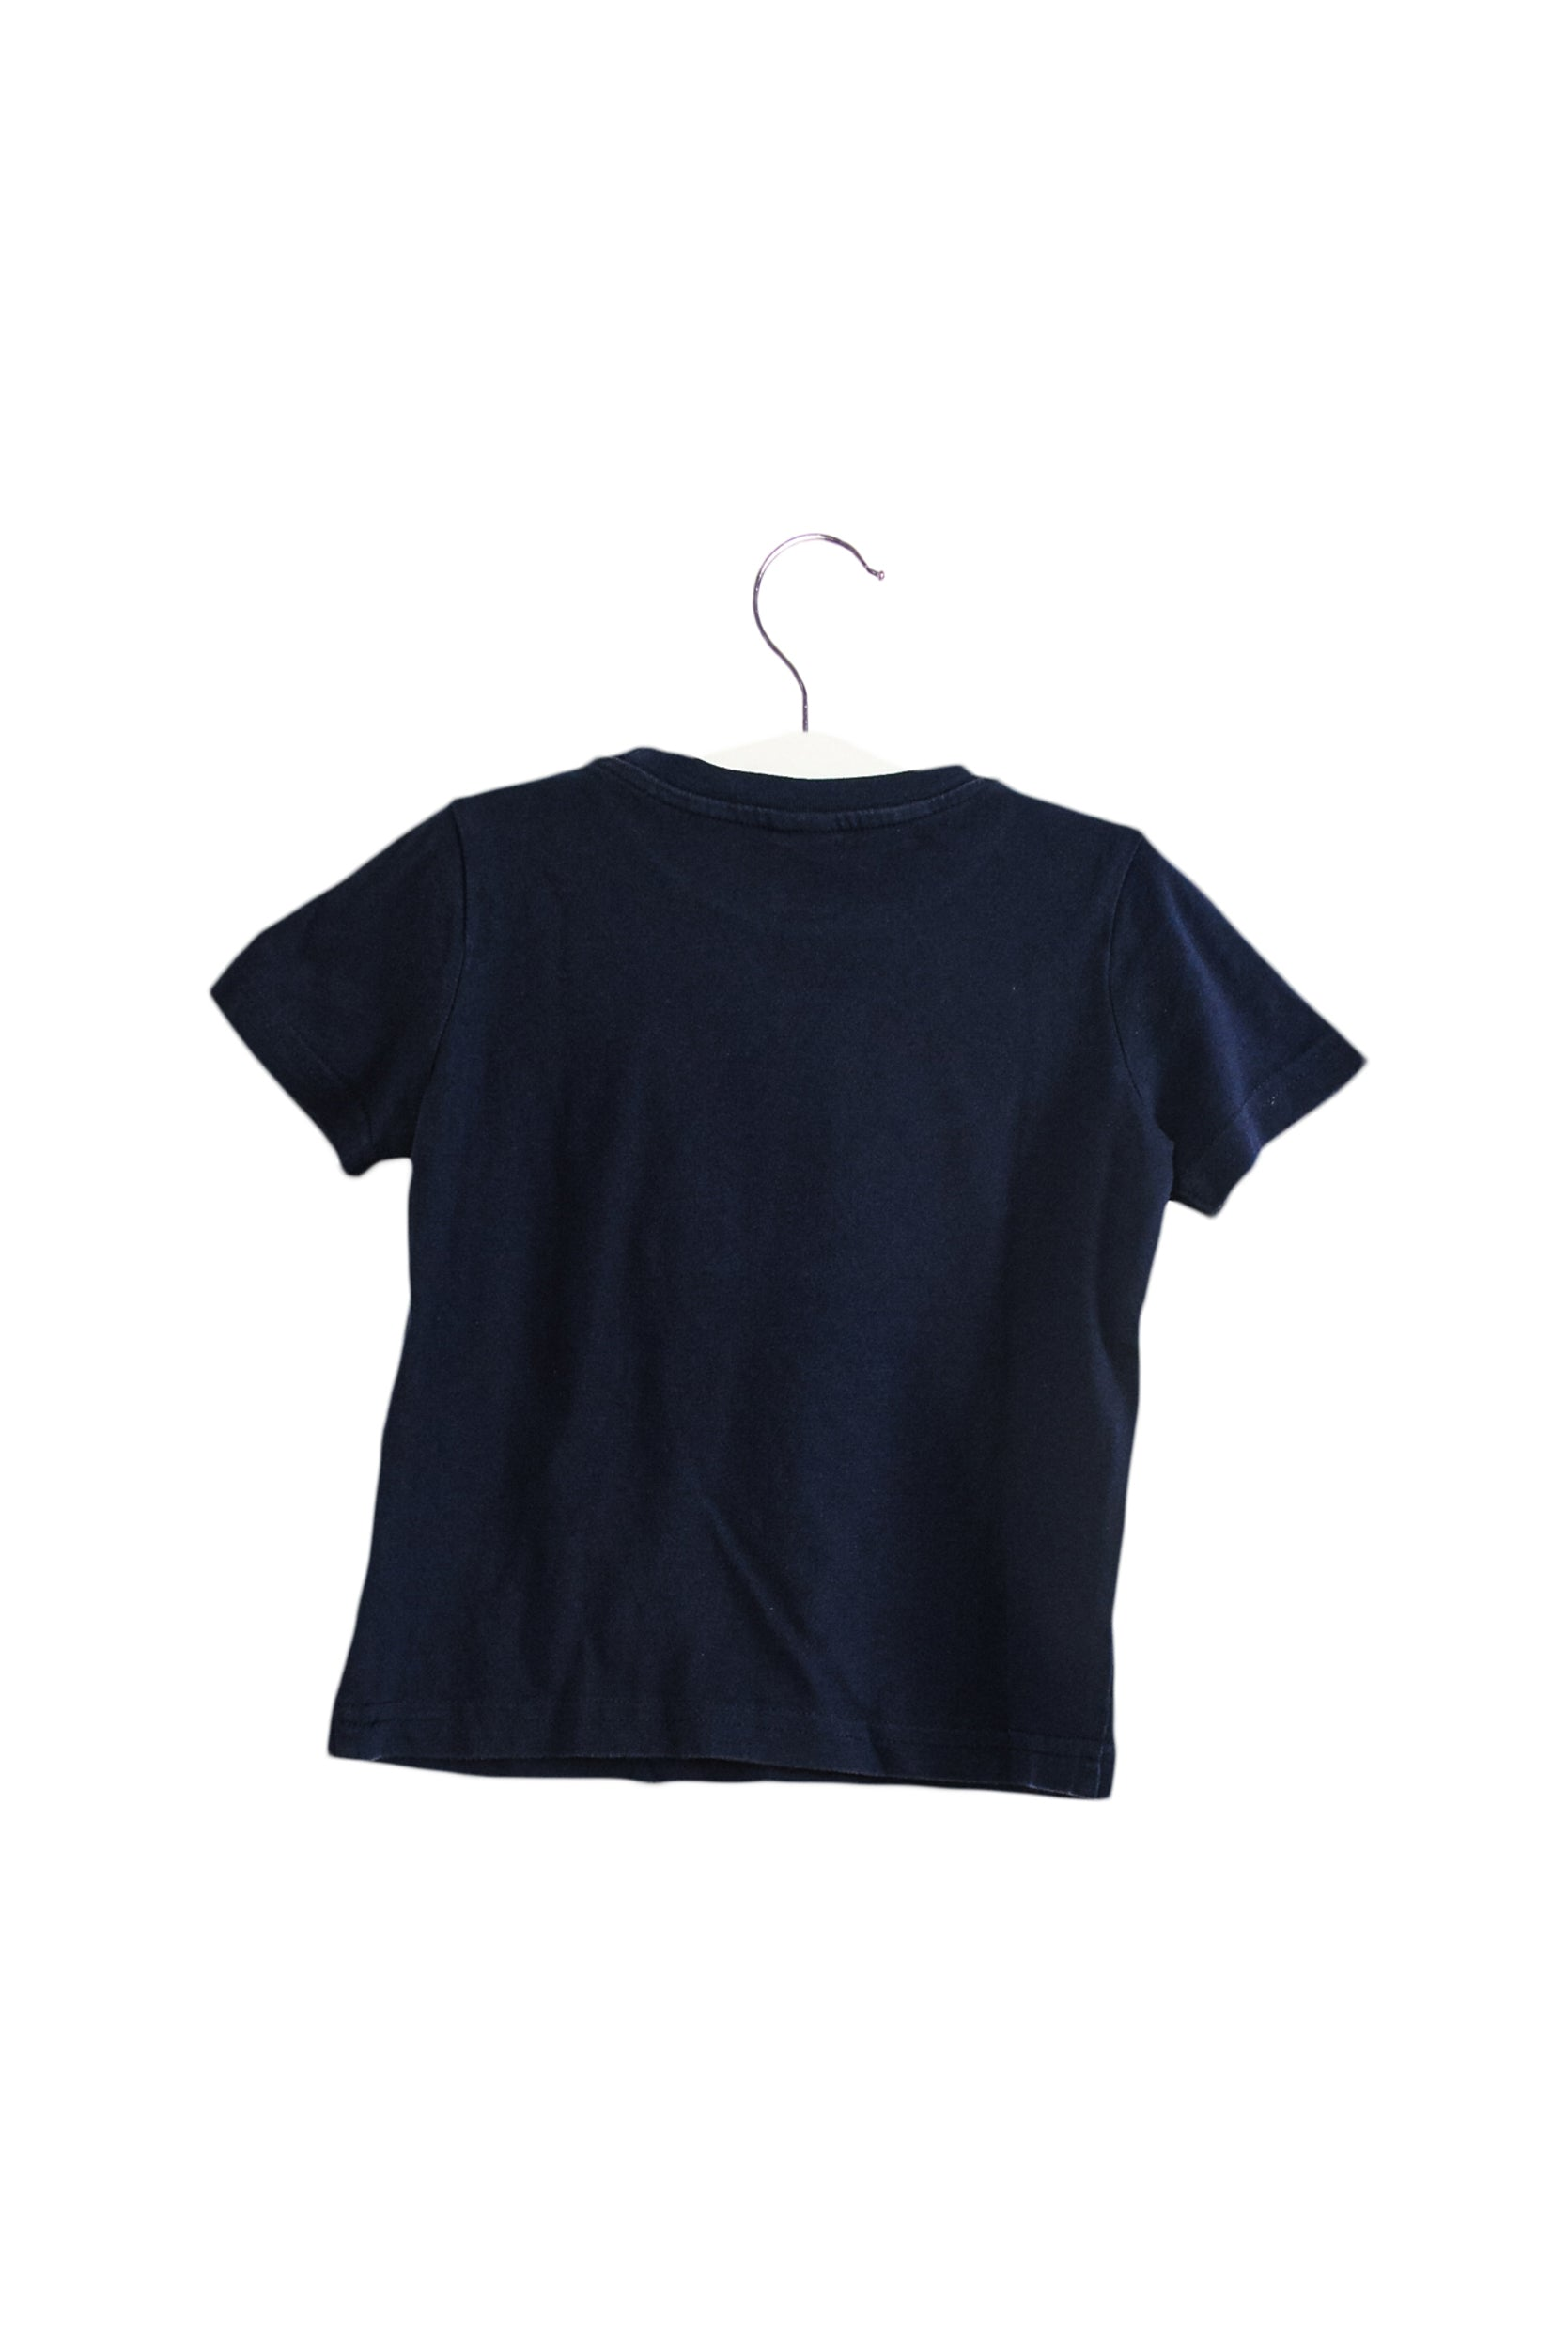 T-Shirt 18-24M at Retykle